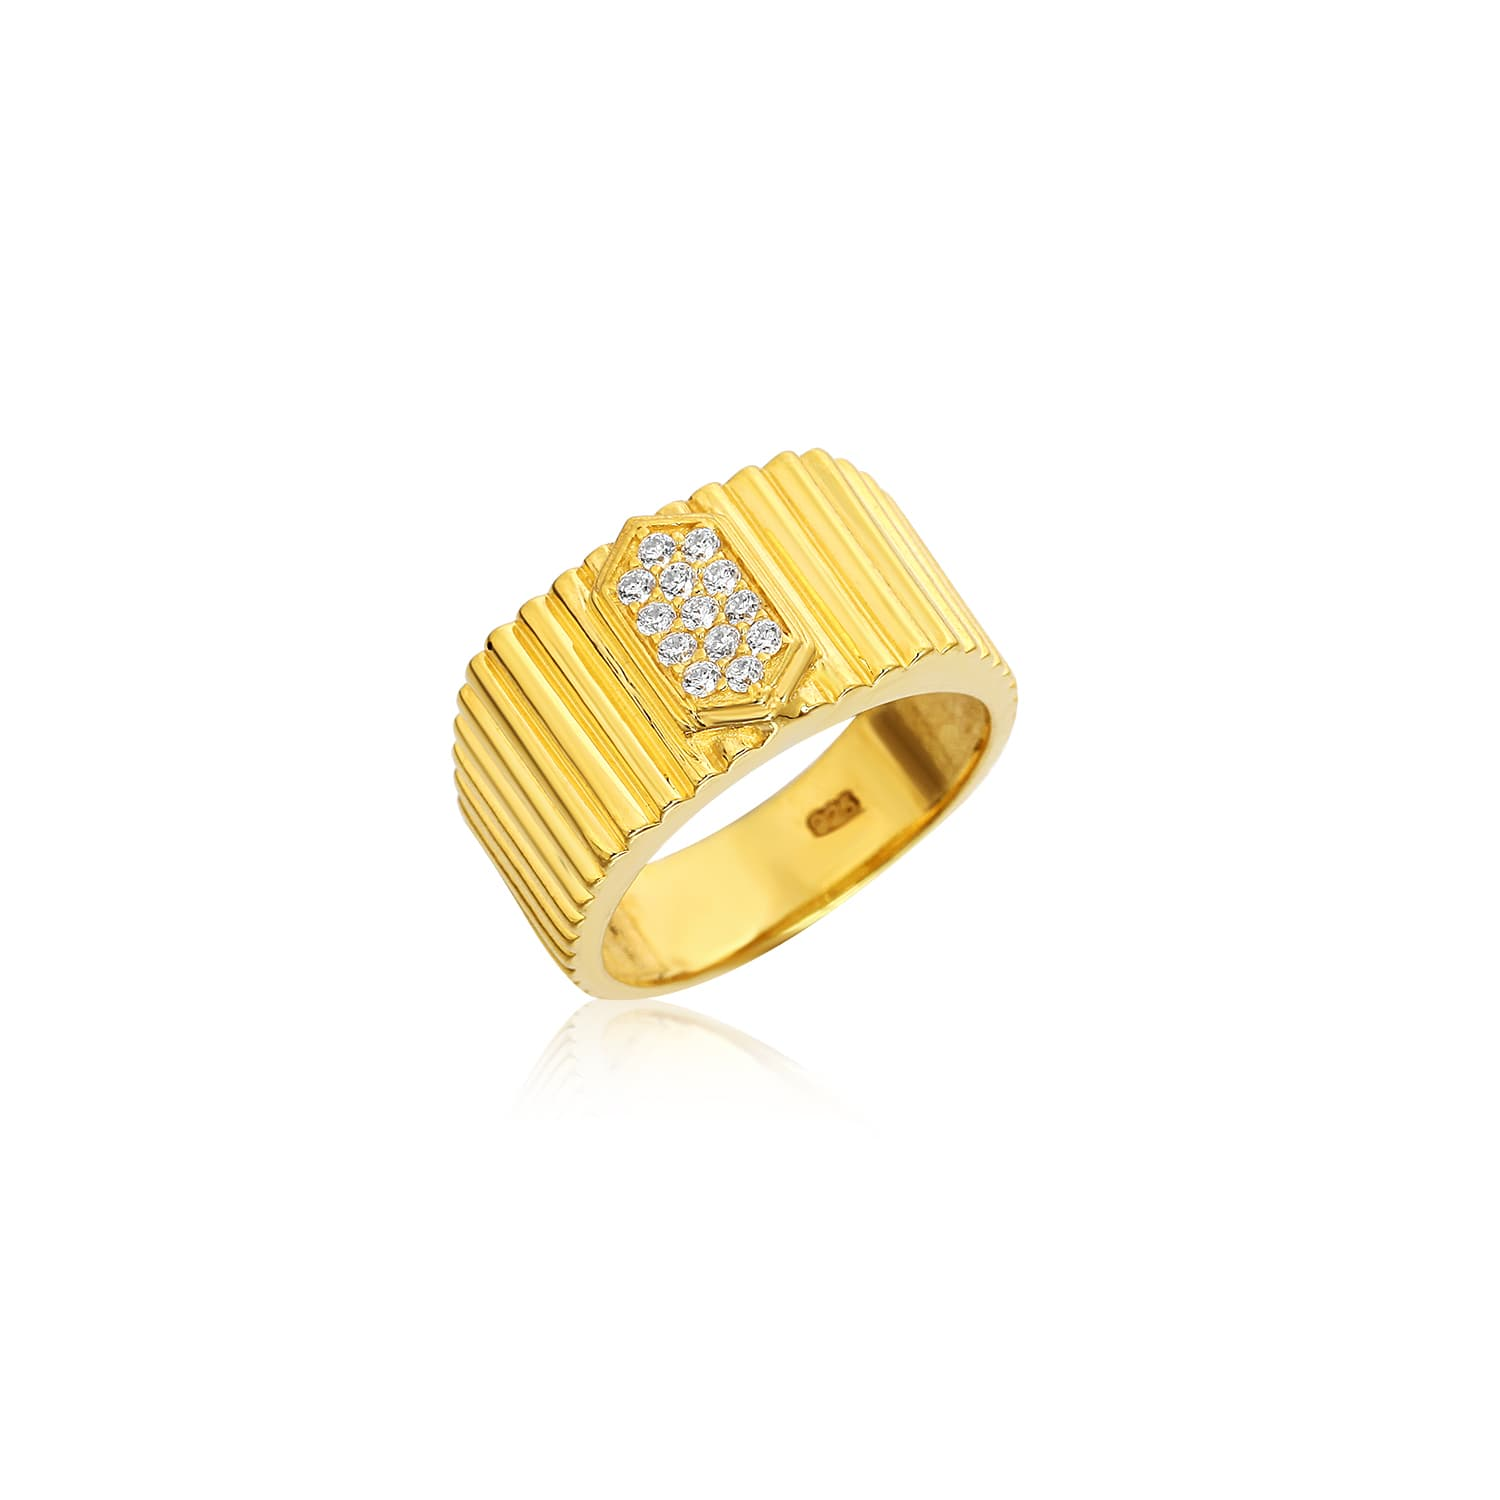 gold plated ring with zircon stone